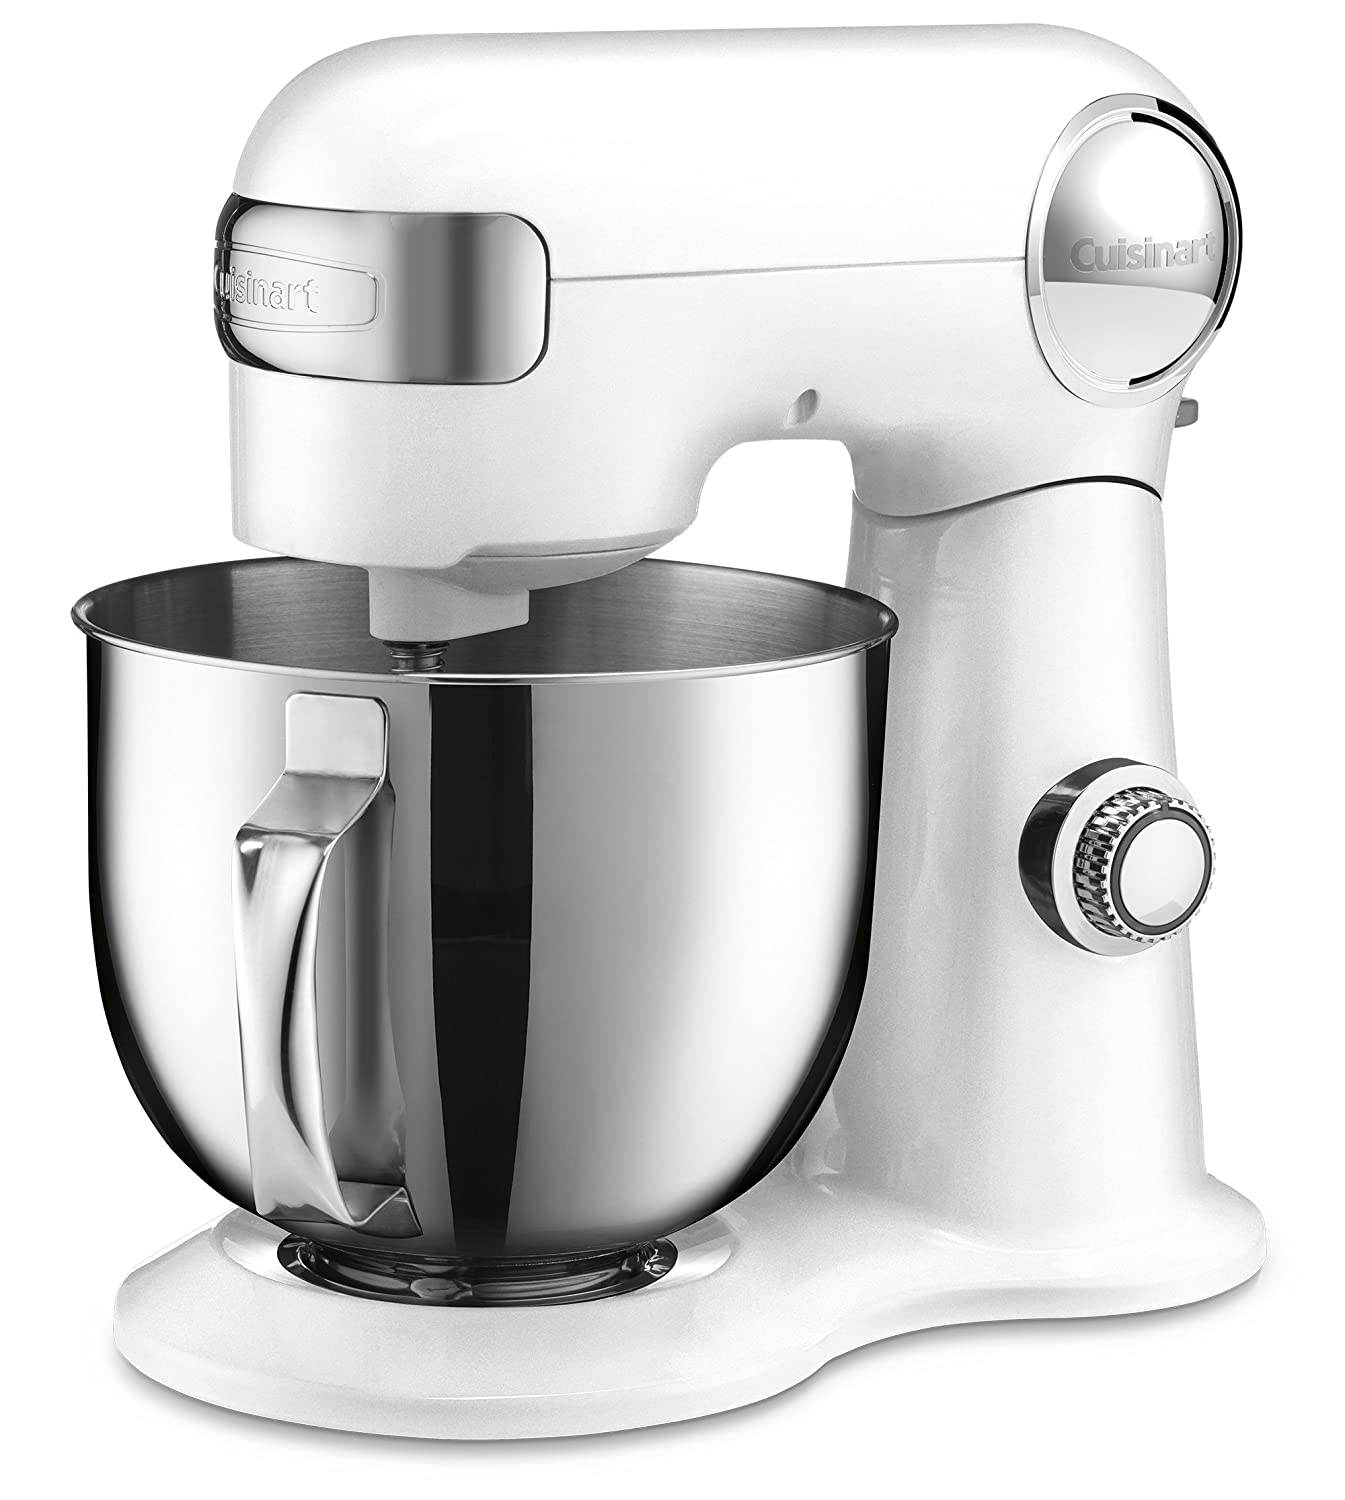 Top 8 Best Stand Mixers Reviews in 2020 You Can Consider 7